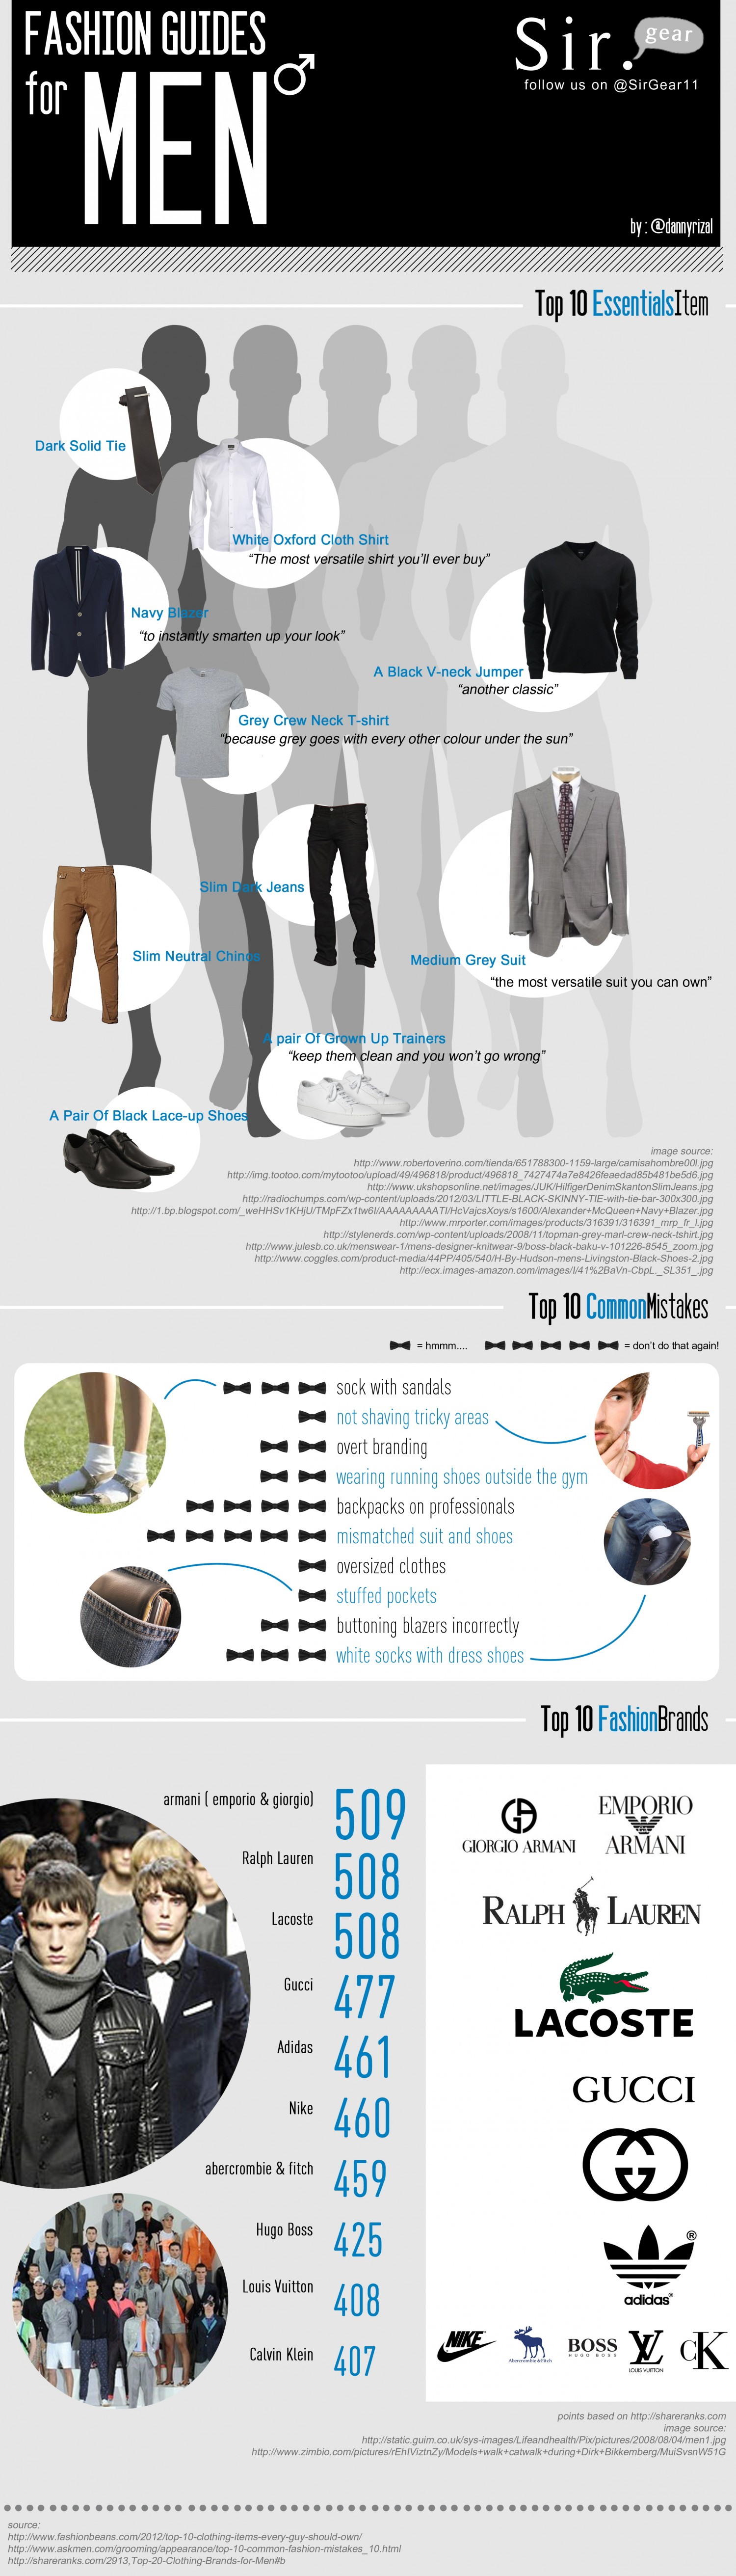 6. Fashion Guides for Men